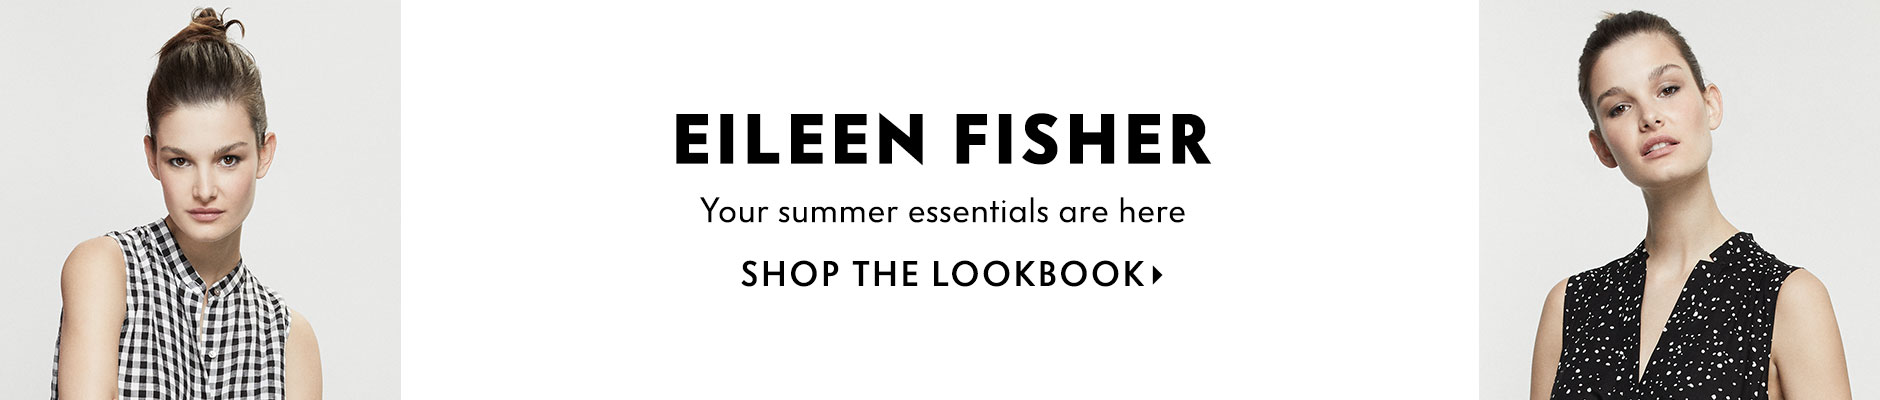 Eileen Fisher - Key Pieces for Summer